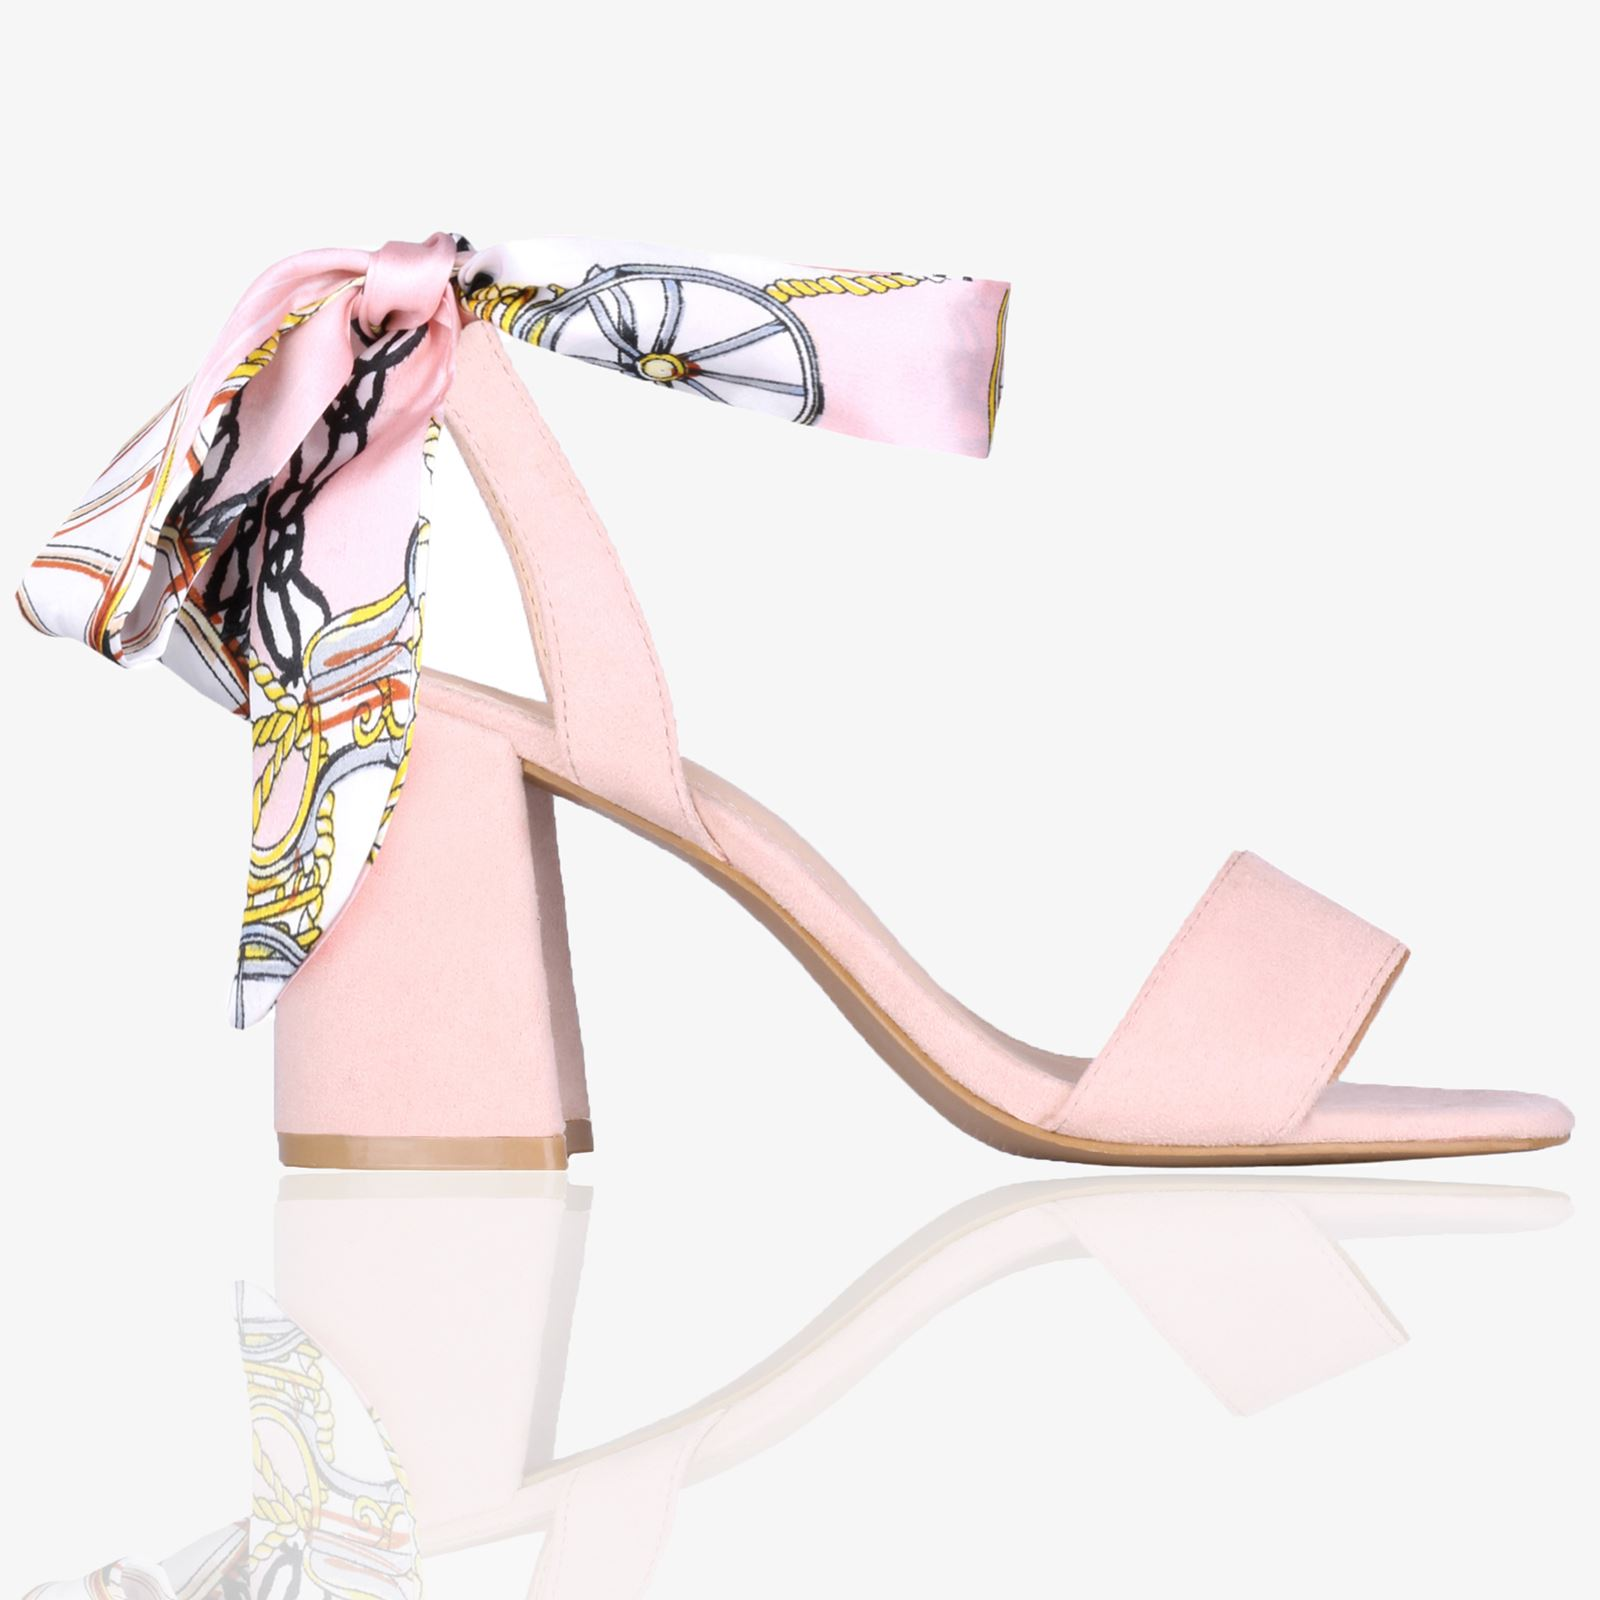 Womans-Ladies-Satin-Ankle-Wrap-Mid-Block-Heel-Open-Toe-Sandals-Summer-Shoes-3-8